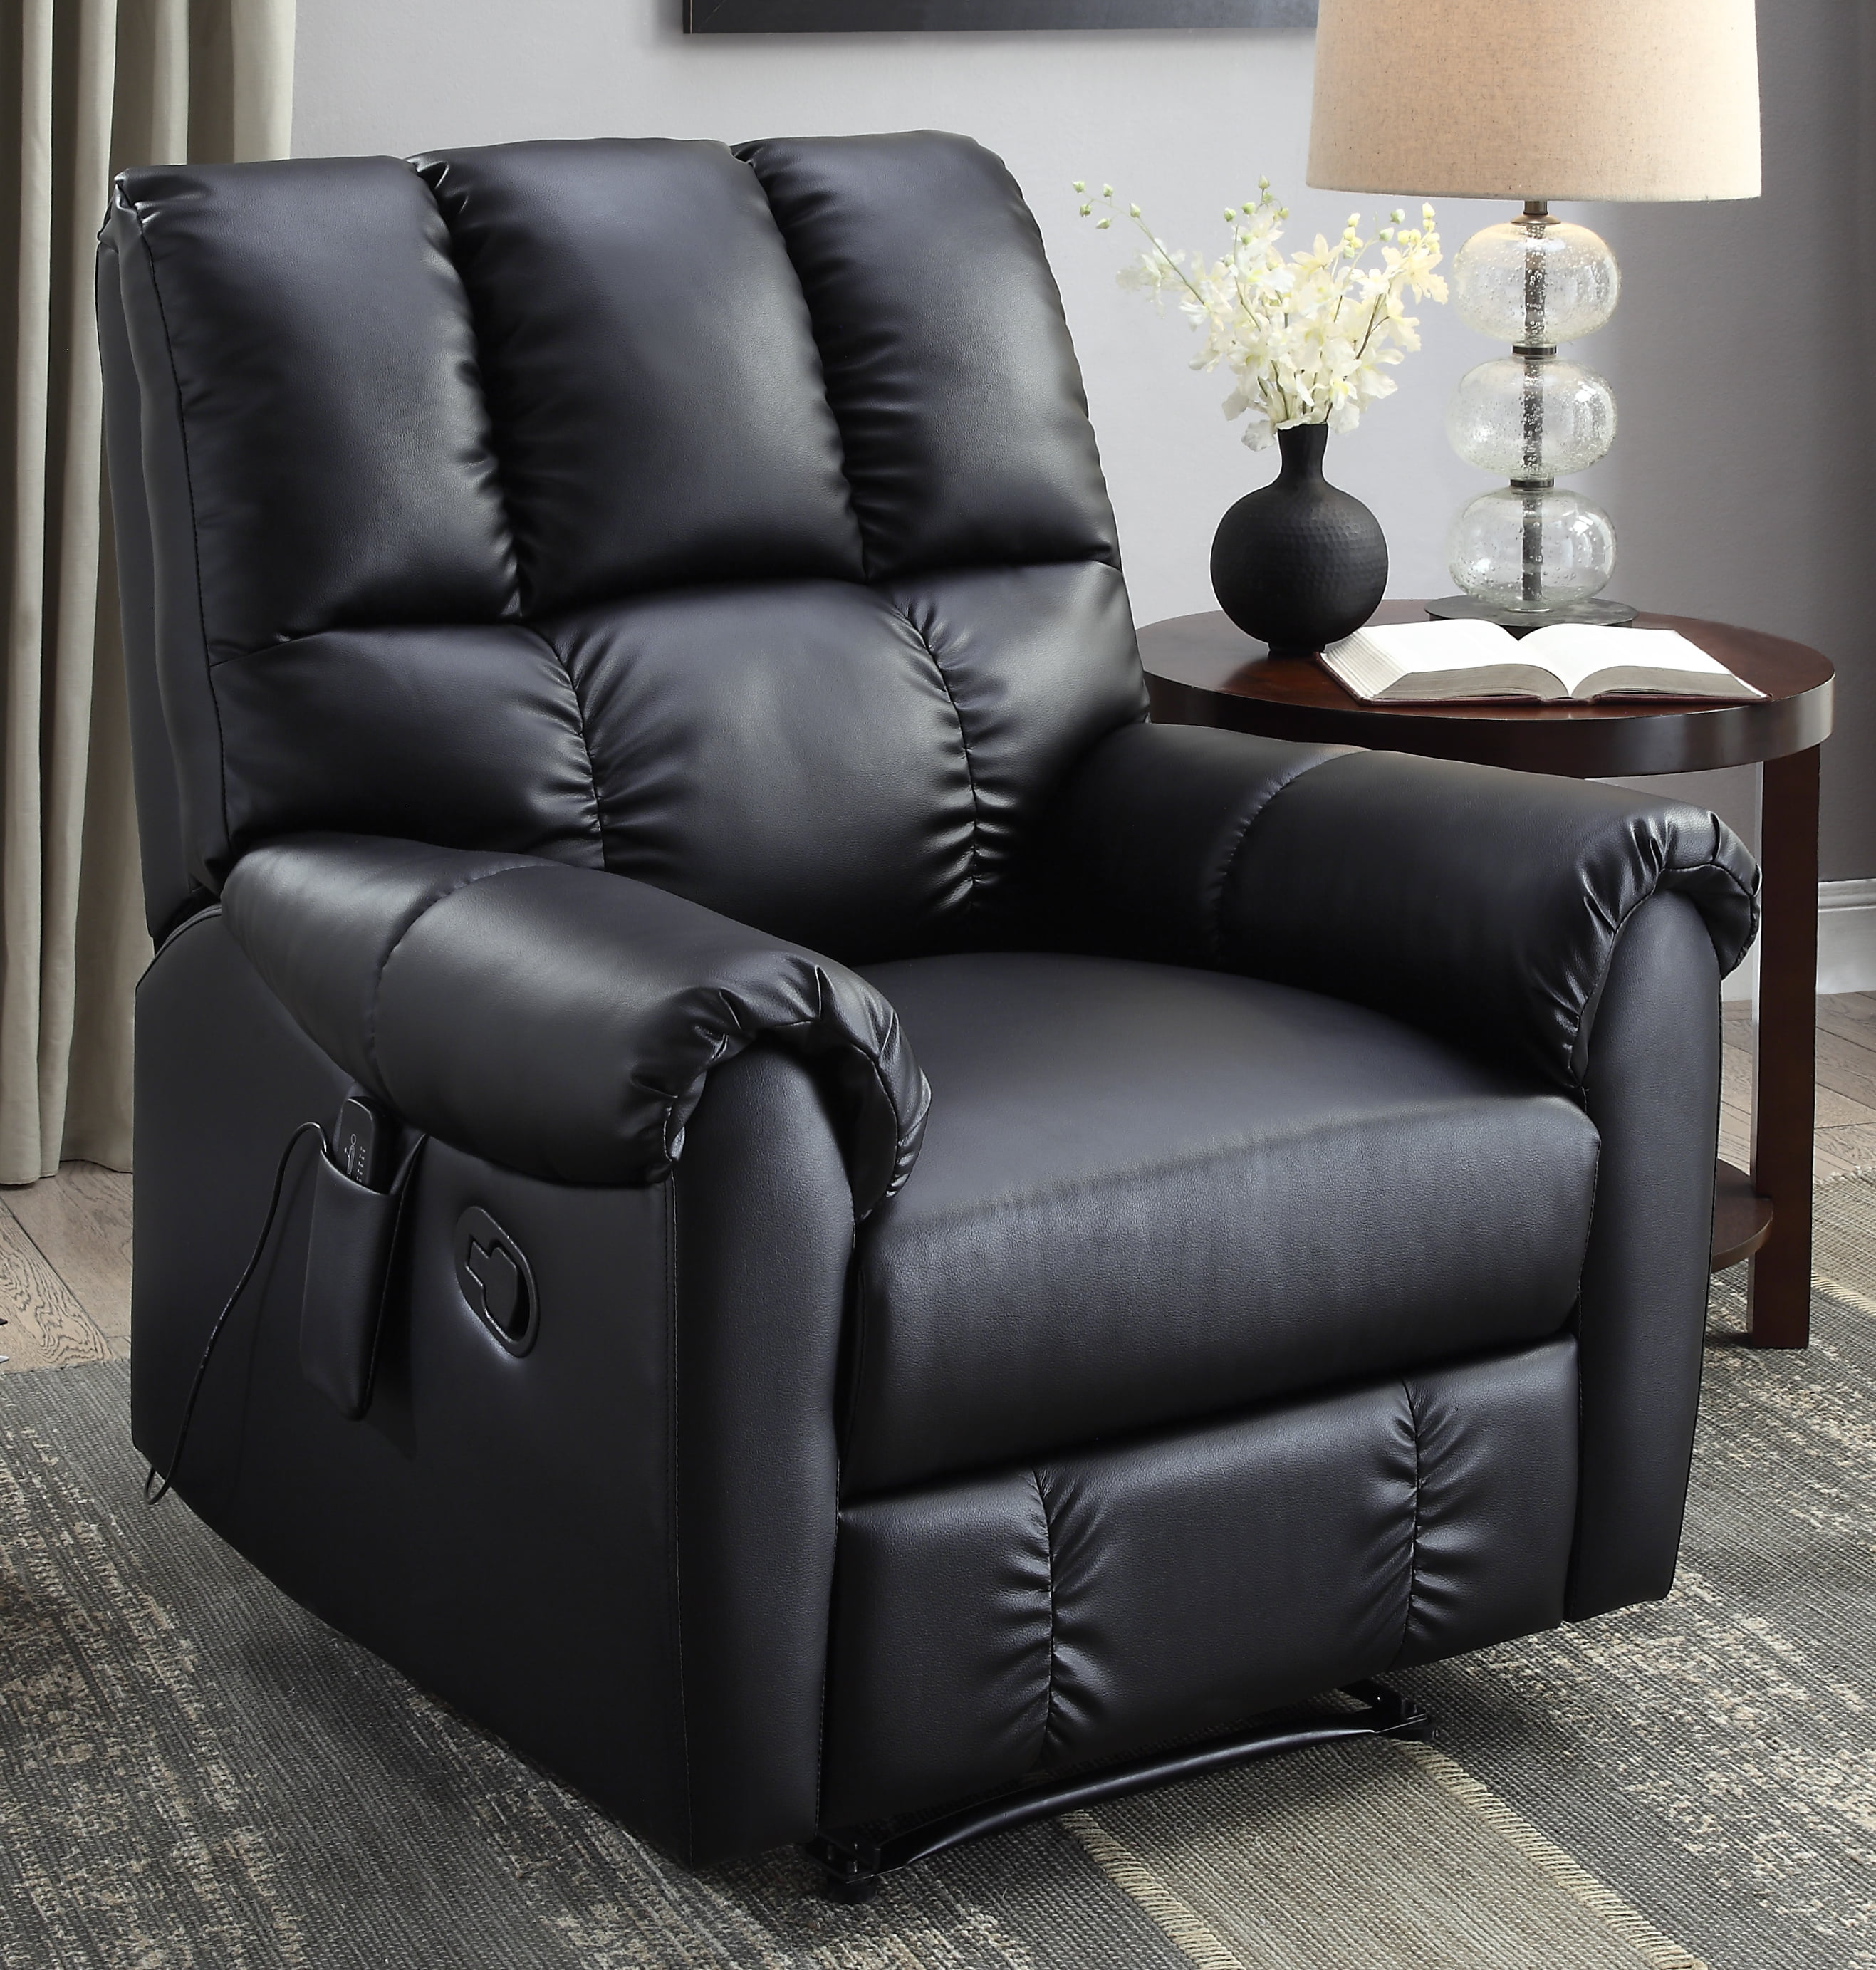 Flash Furniture 7320 Leather Massaging Recliner with Ottoman - Walmart.com & Flash Furniture 7320 Leather Massaging Recliner with Ottoman ... islam-shia.org